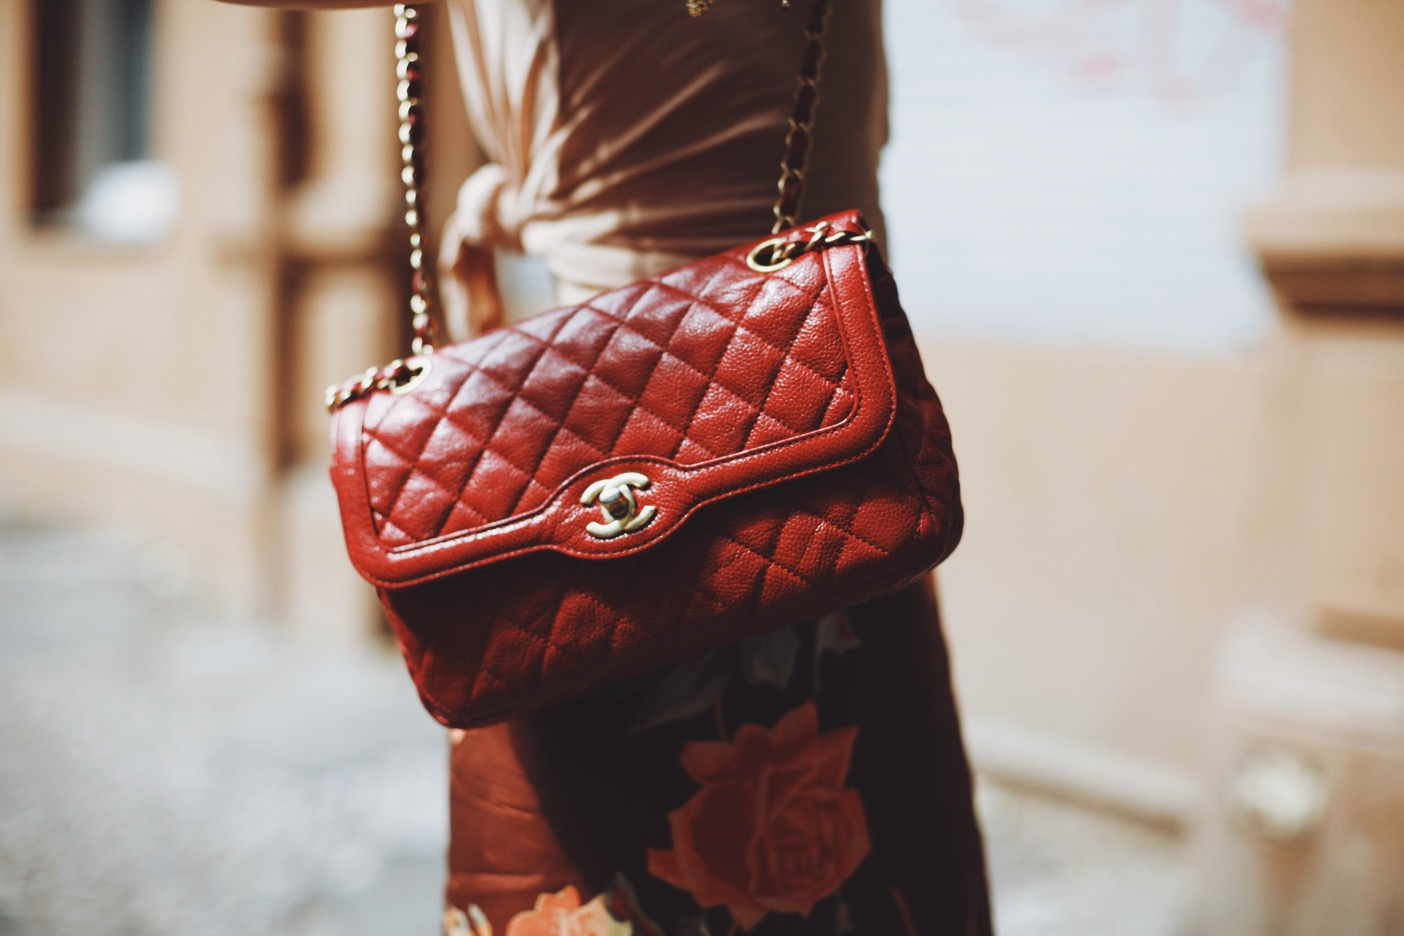 this is jane wayne red chanel bag